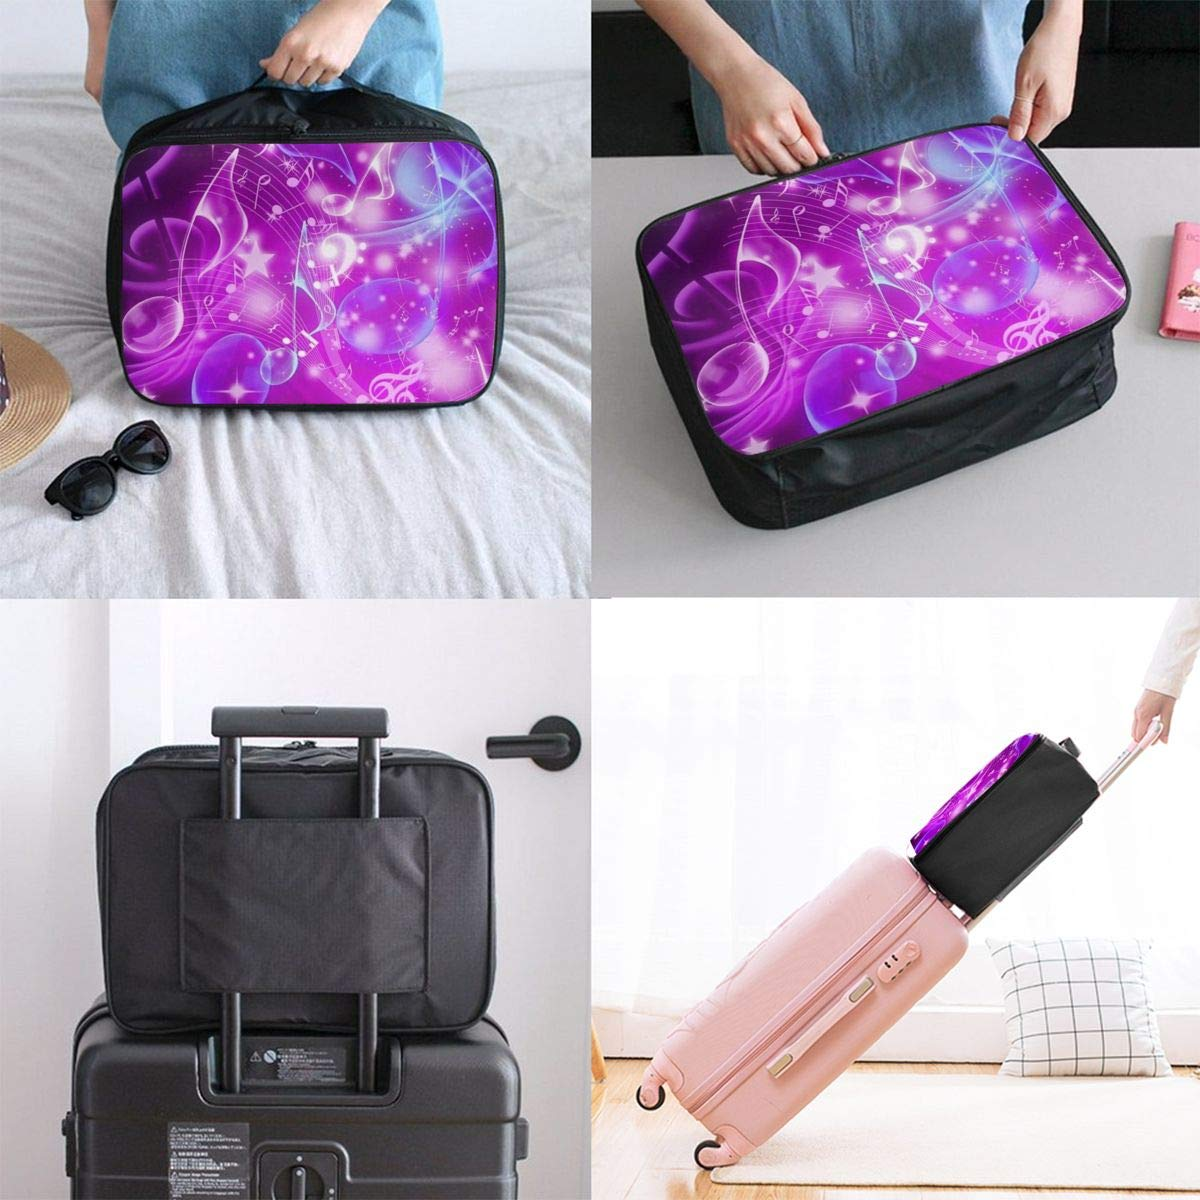 Music Note Purple Neon Travel Lightweight Waterproof Foldable Storage Portable Luggage Duffle Tote Bag Large Capacity In Trolley Handle Bags 6x11x15 Inch